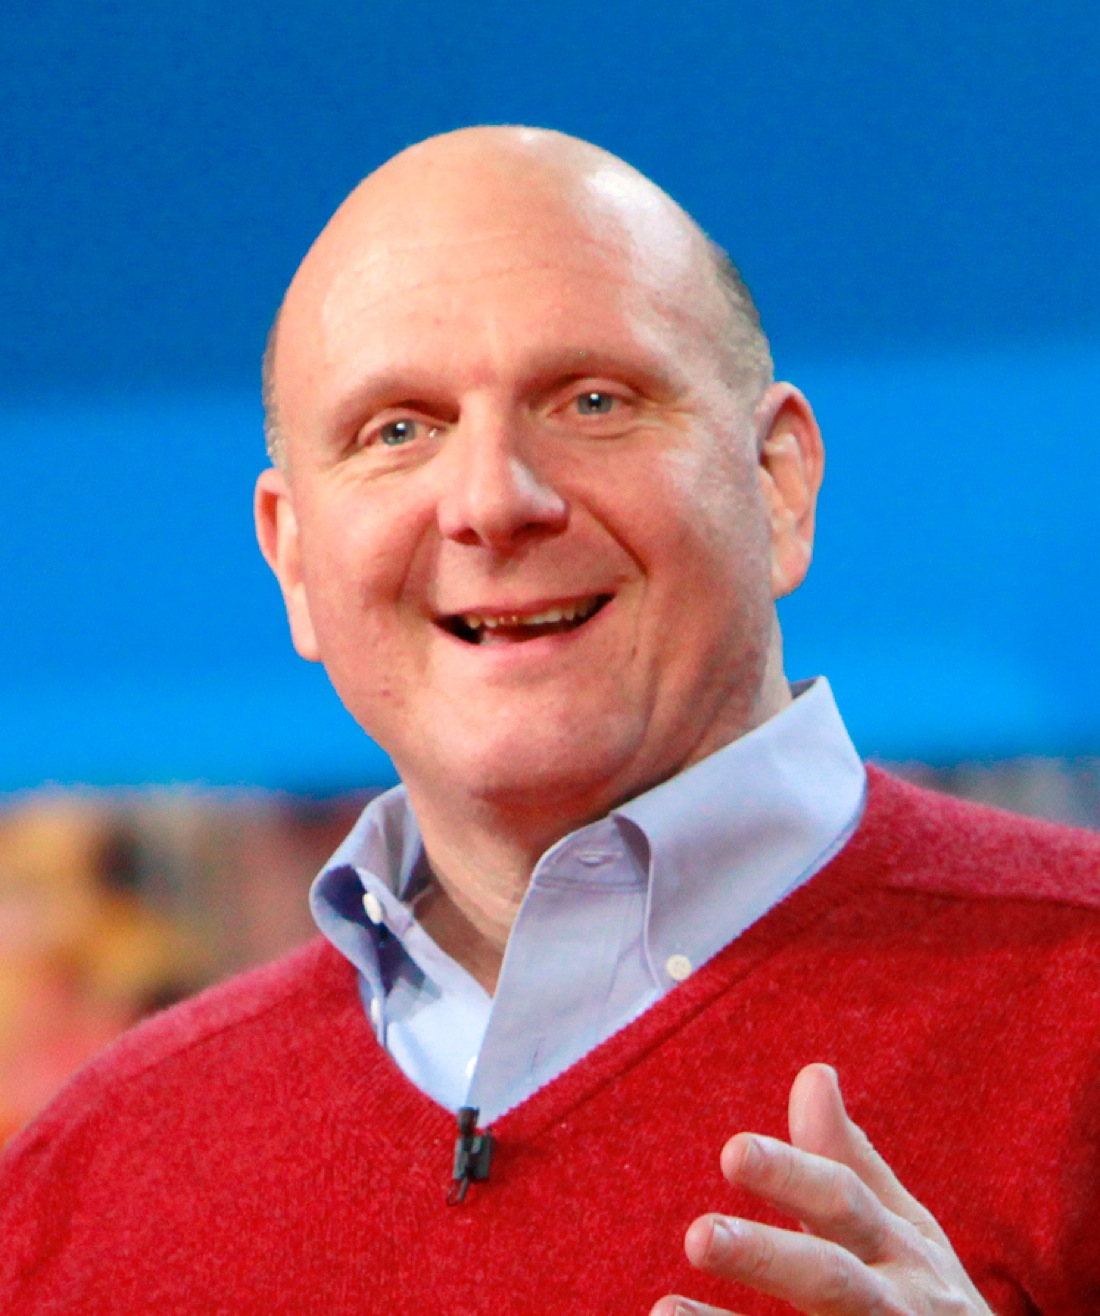 Steve Ballmer at CES 2010 cropped